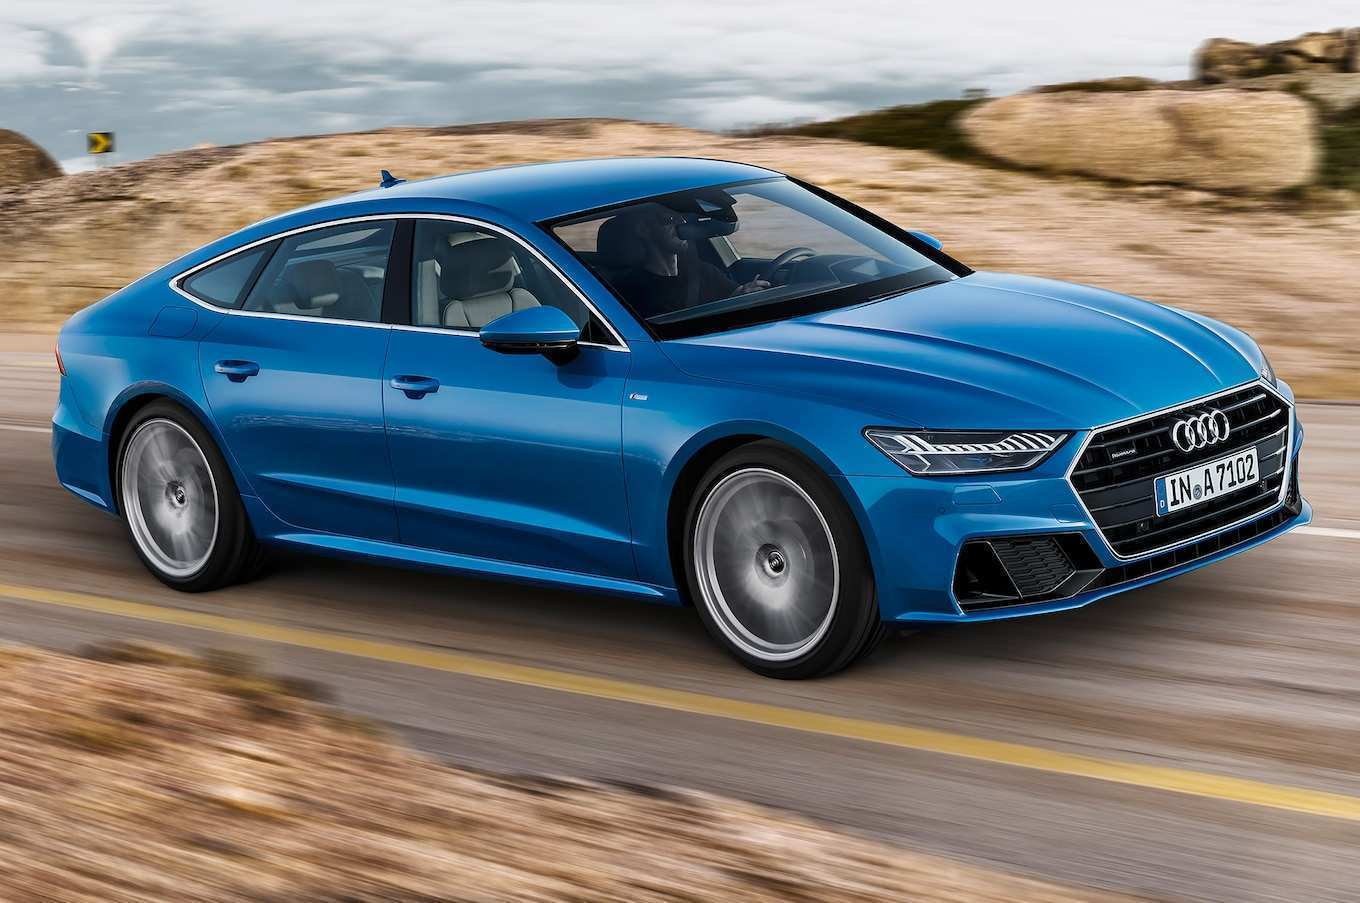 23 New 2019 Audi A7 Interior Redesign by 2019 Audi A7 Interior